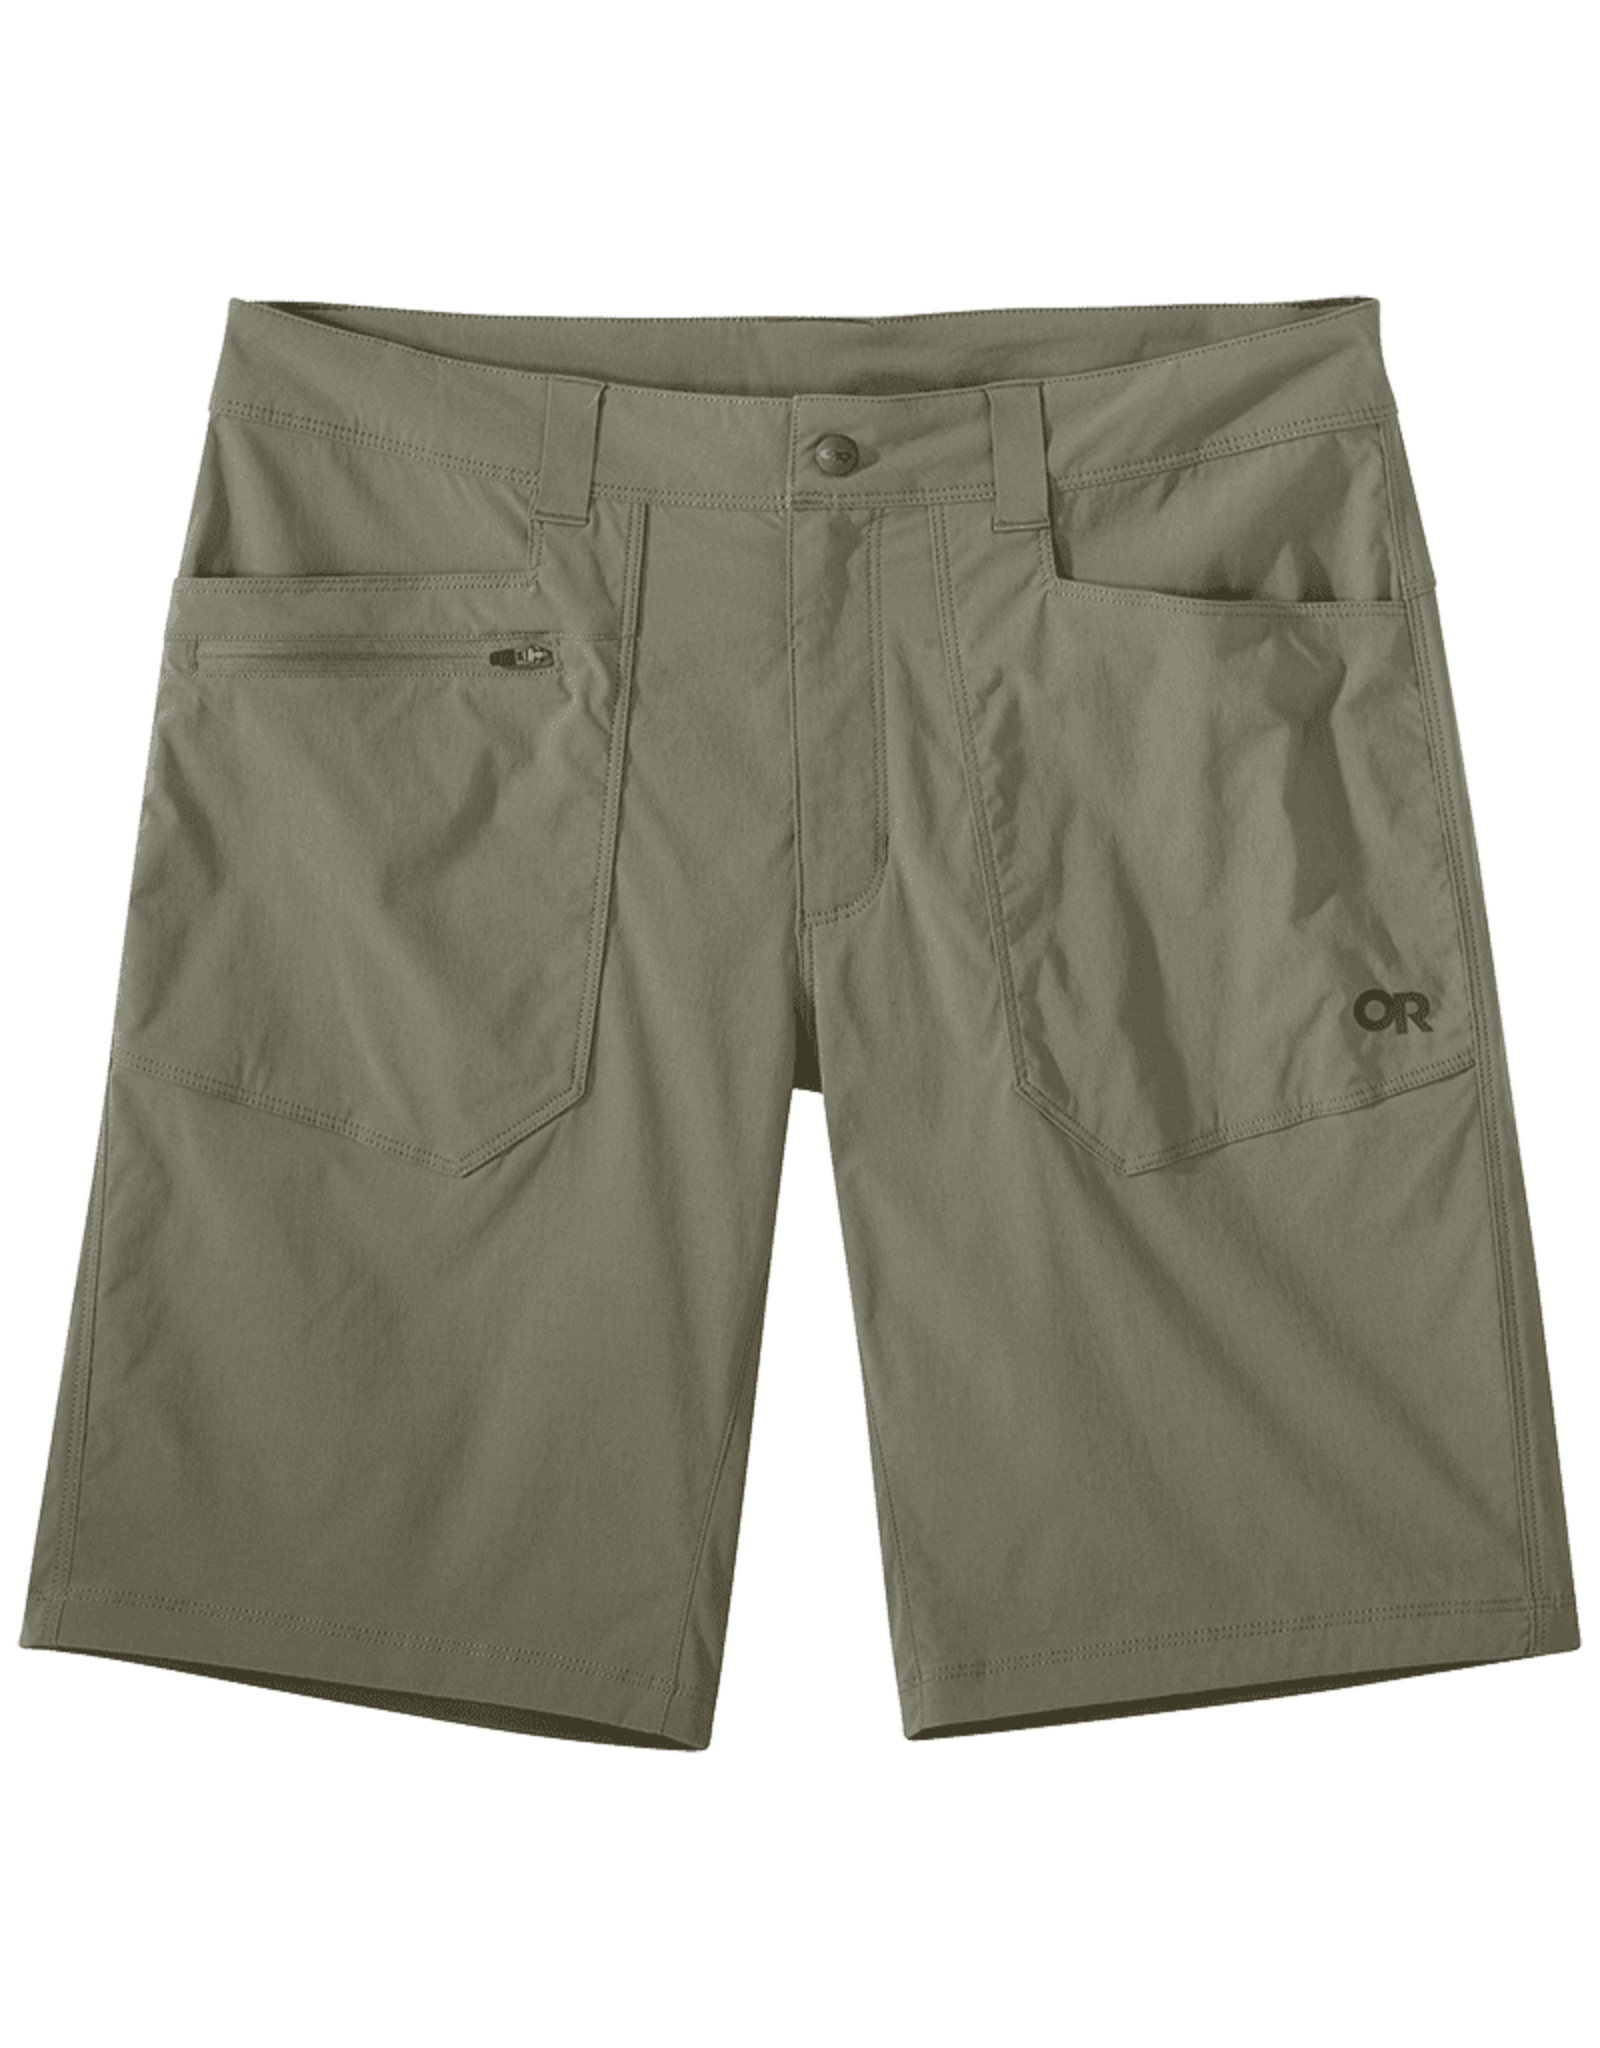 "OUTDOOR RESEARCH MEN'S EQUINOX SHORTS 10"" INSEAM"